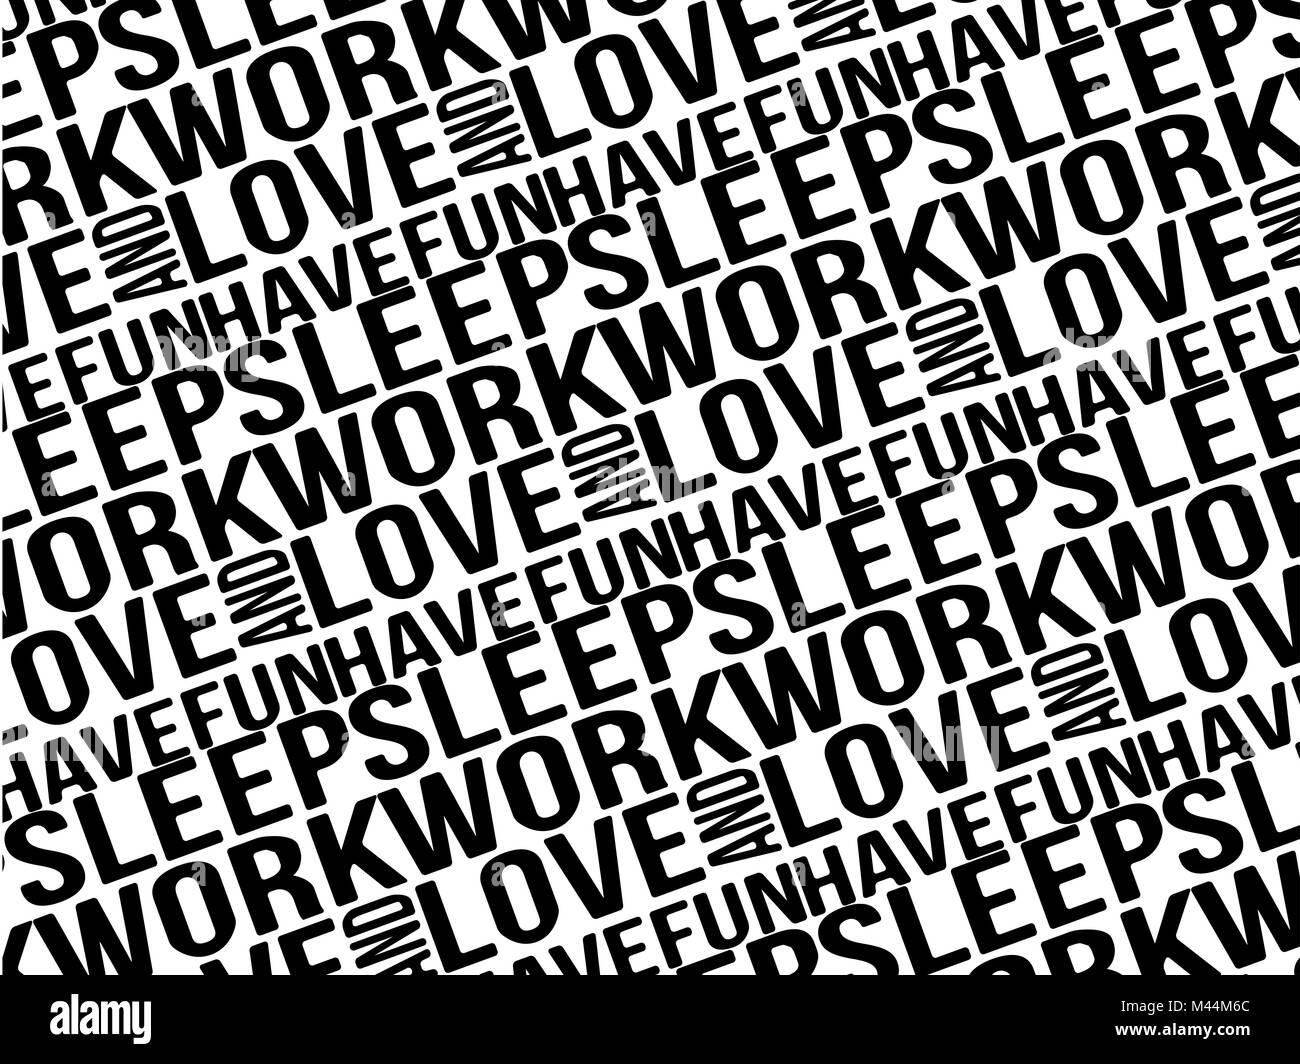 Sleep Work Love and Have Fun Typographic Pattern - Stock Image